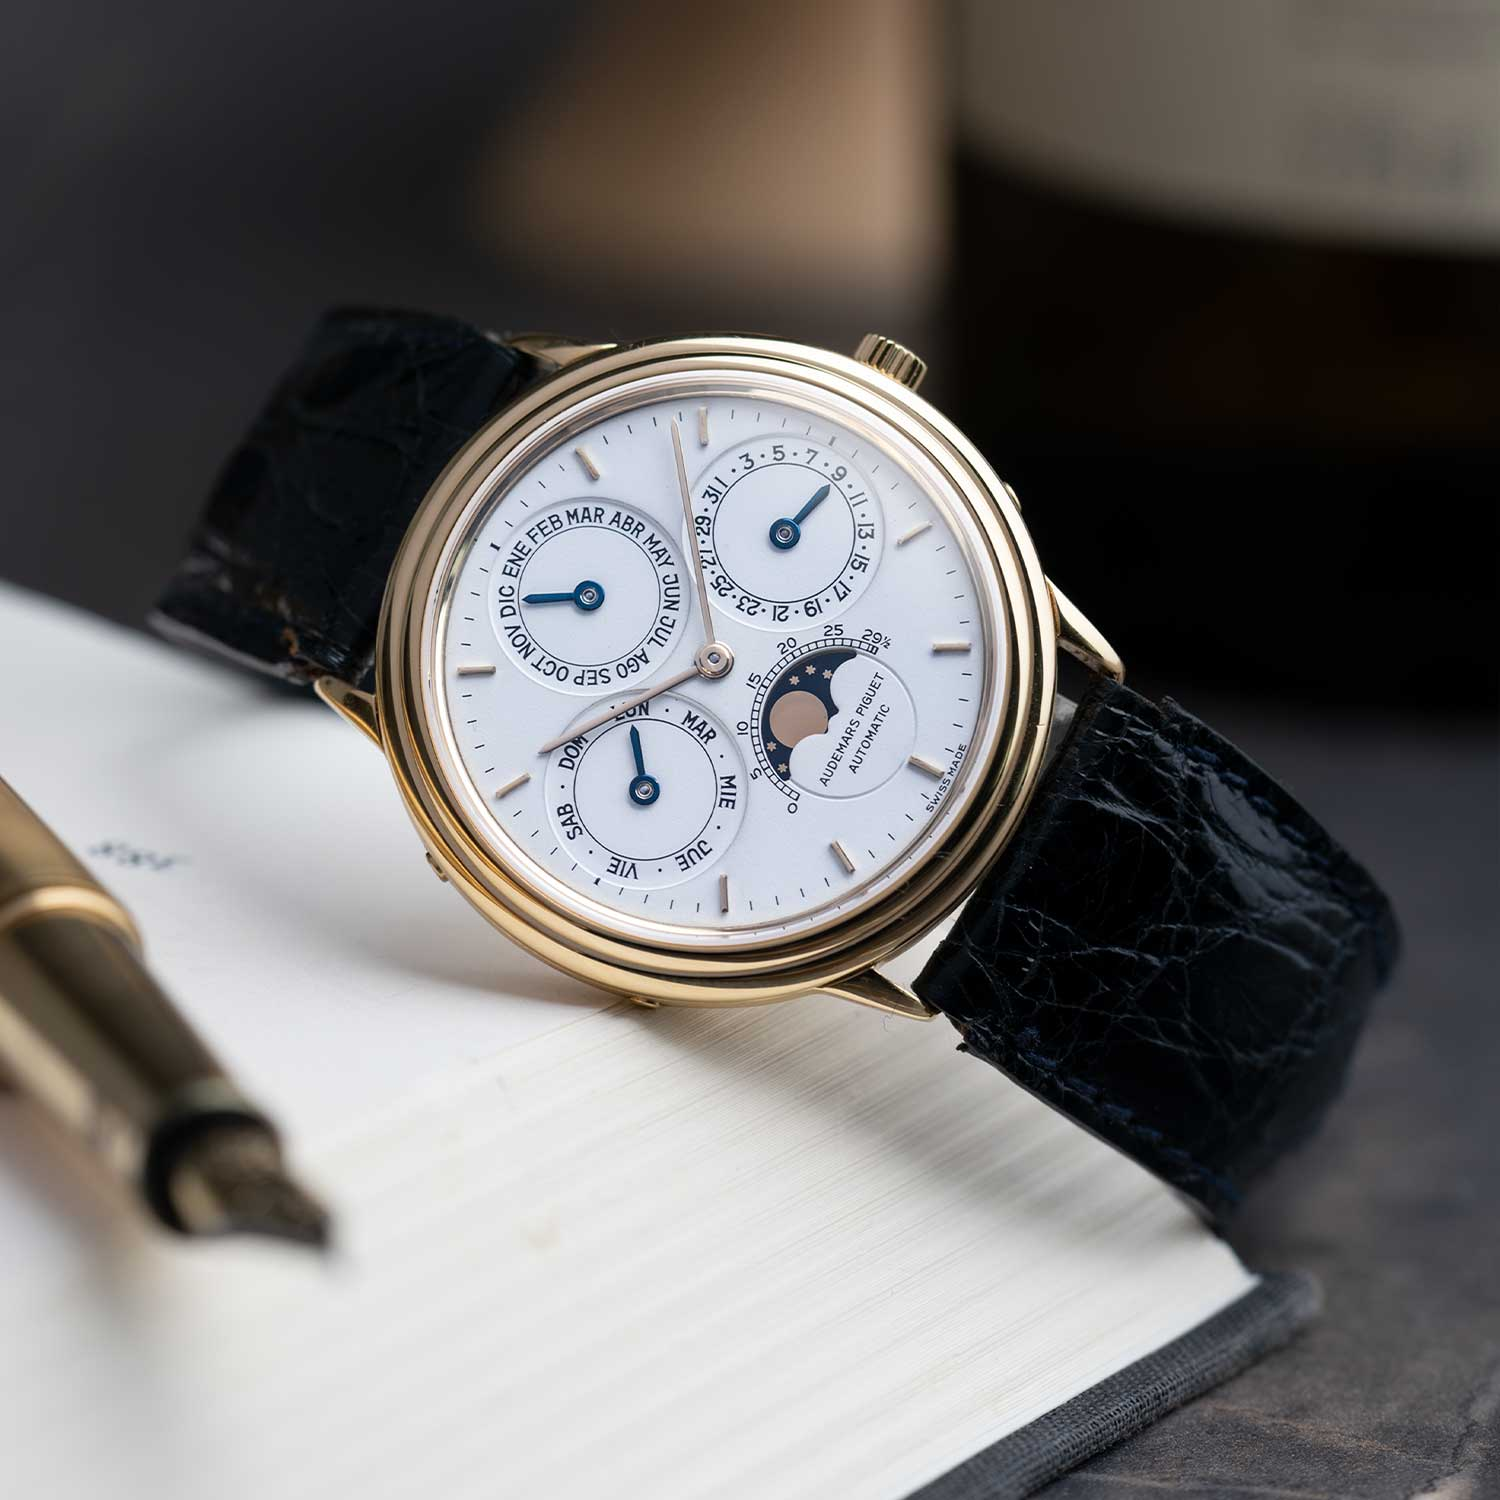 A ref. 25548BA, seen here with a dial in Spanish lettering; the watch seen here is presently part of the Pygmalion Gallery's private collection (Image: Photo and watch, property of Pygmalion Gallery)